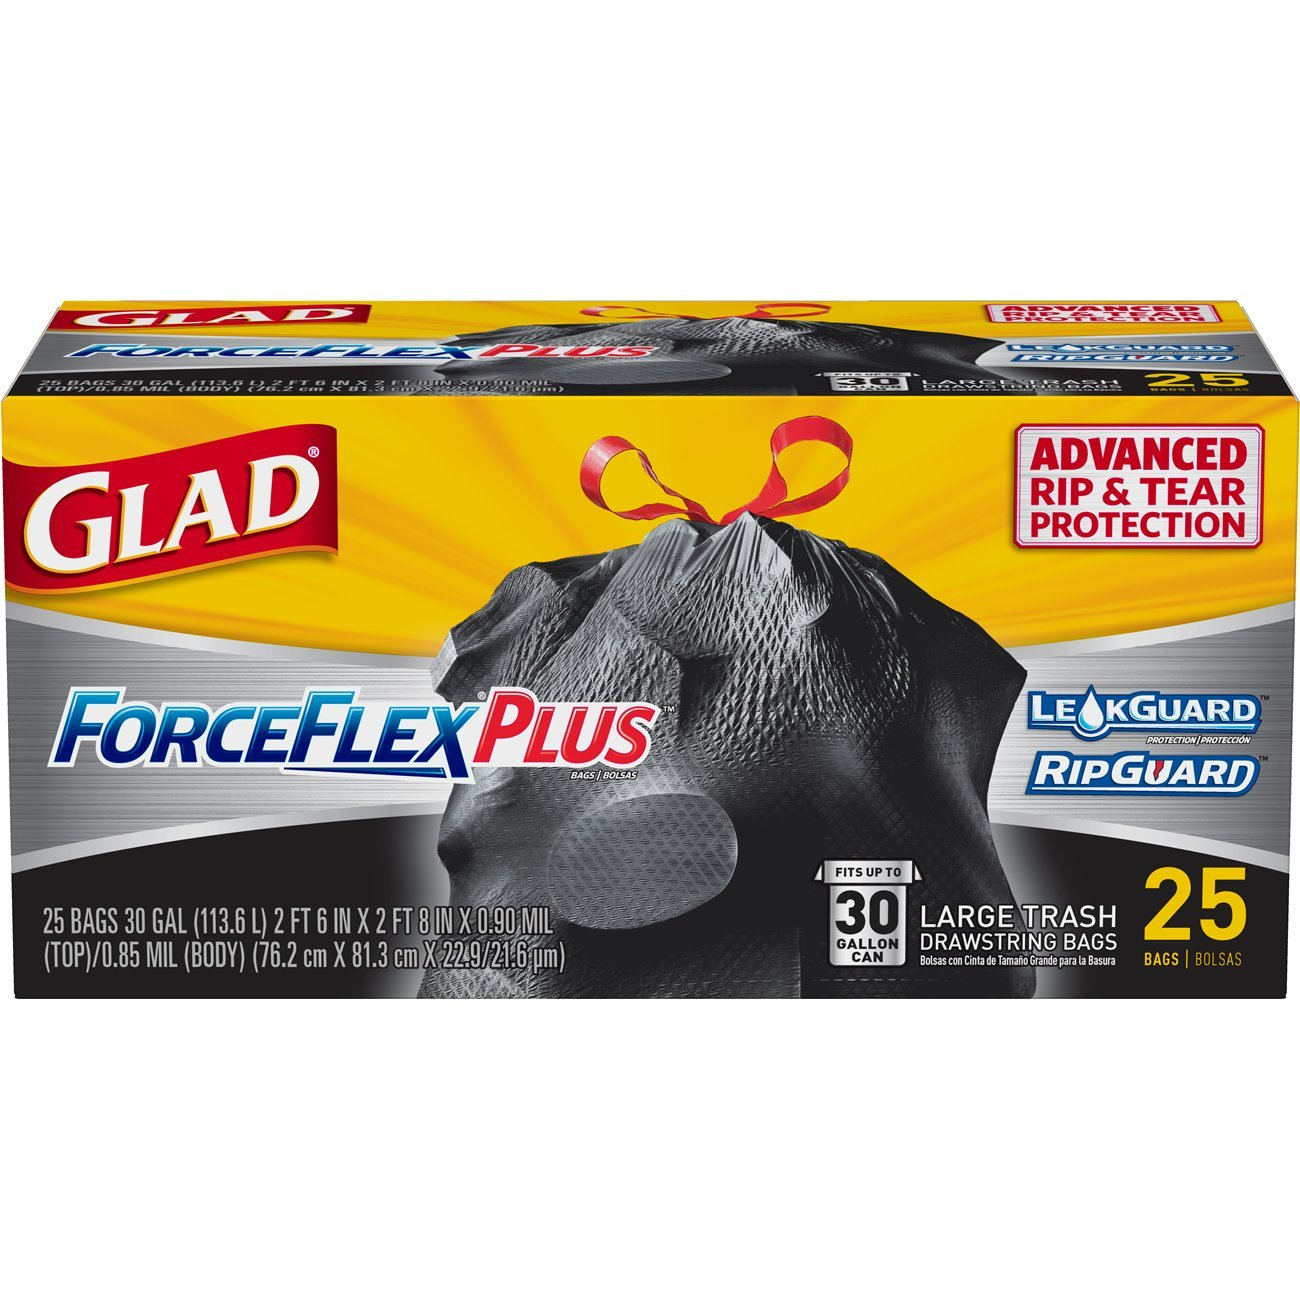 Amazon.com: Glad Large Drawstring Trash Bags – ForceFlexPlus 30 Gallon Black Trash Bag - 25 Count: Prime Pantry